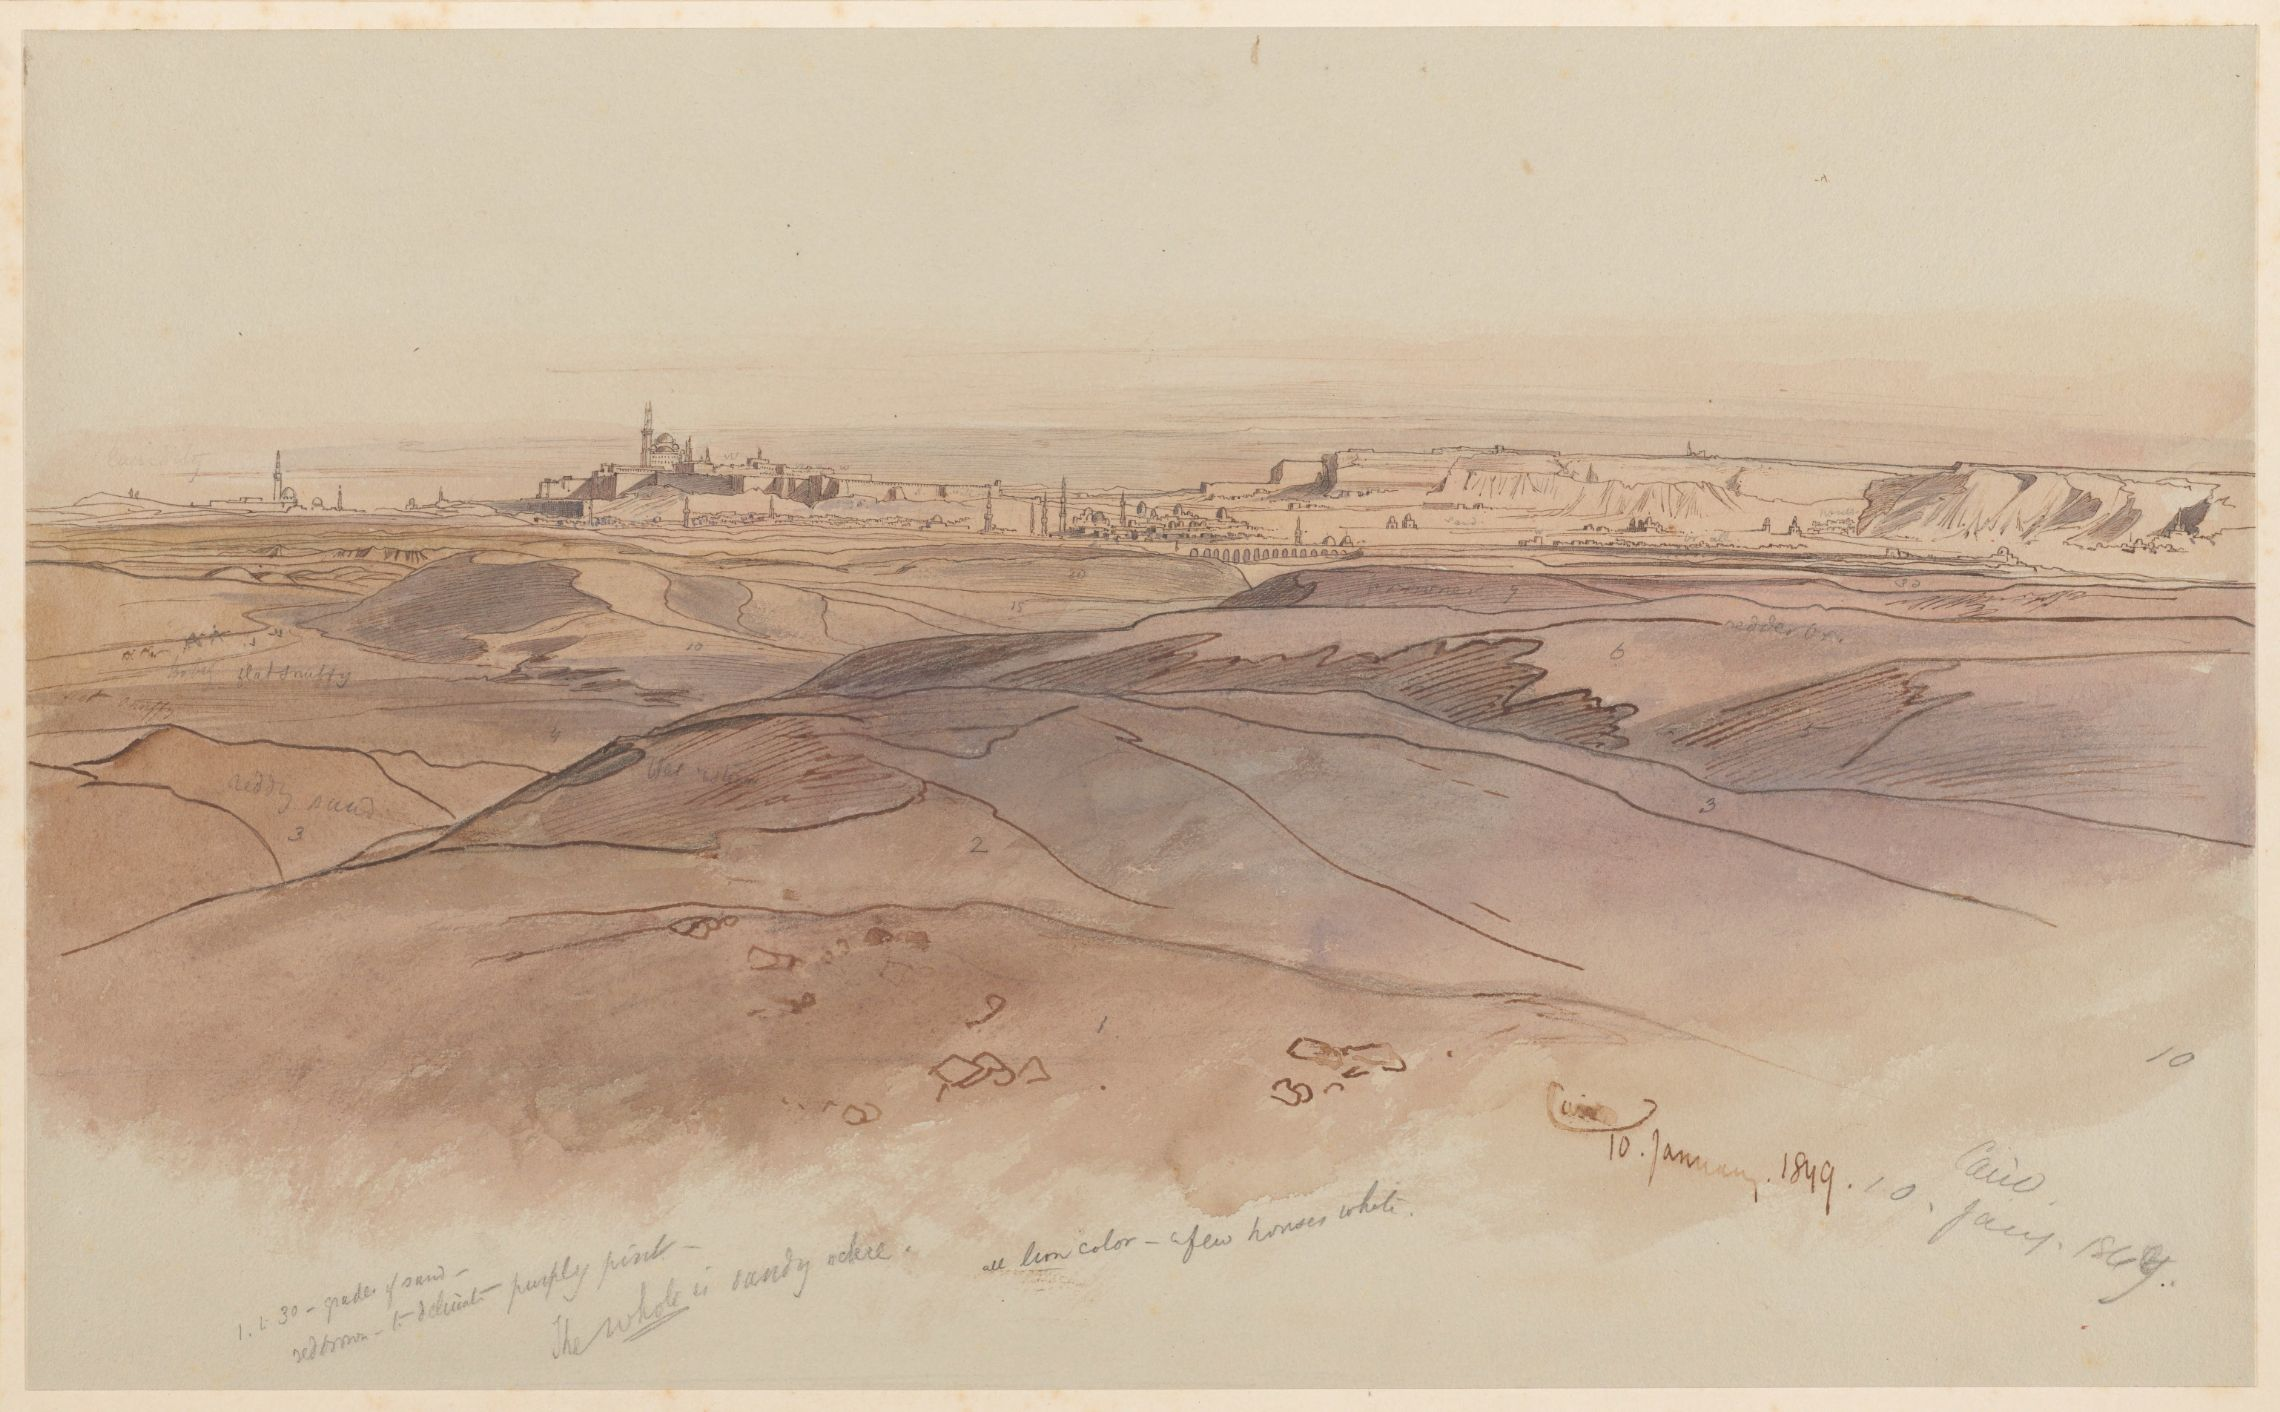 Edward Lear. CAIRO. 10 January 1849. MS Typ 55.26 (646)